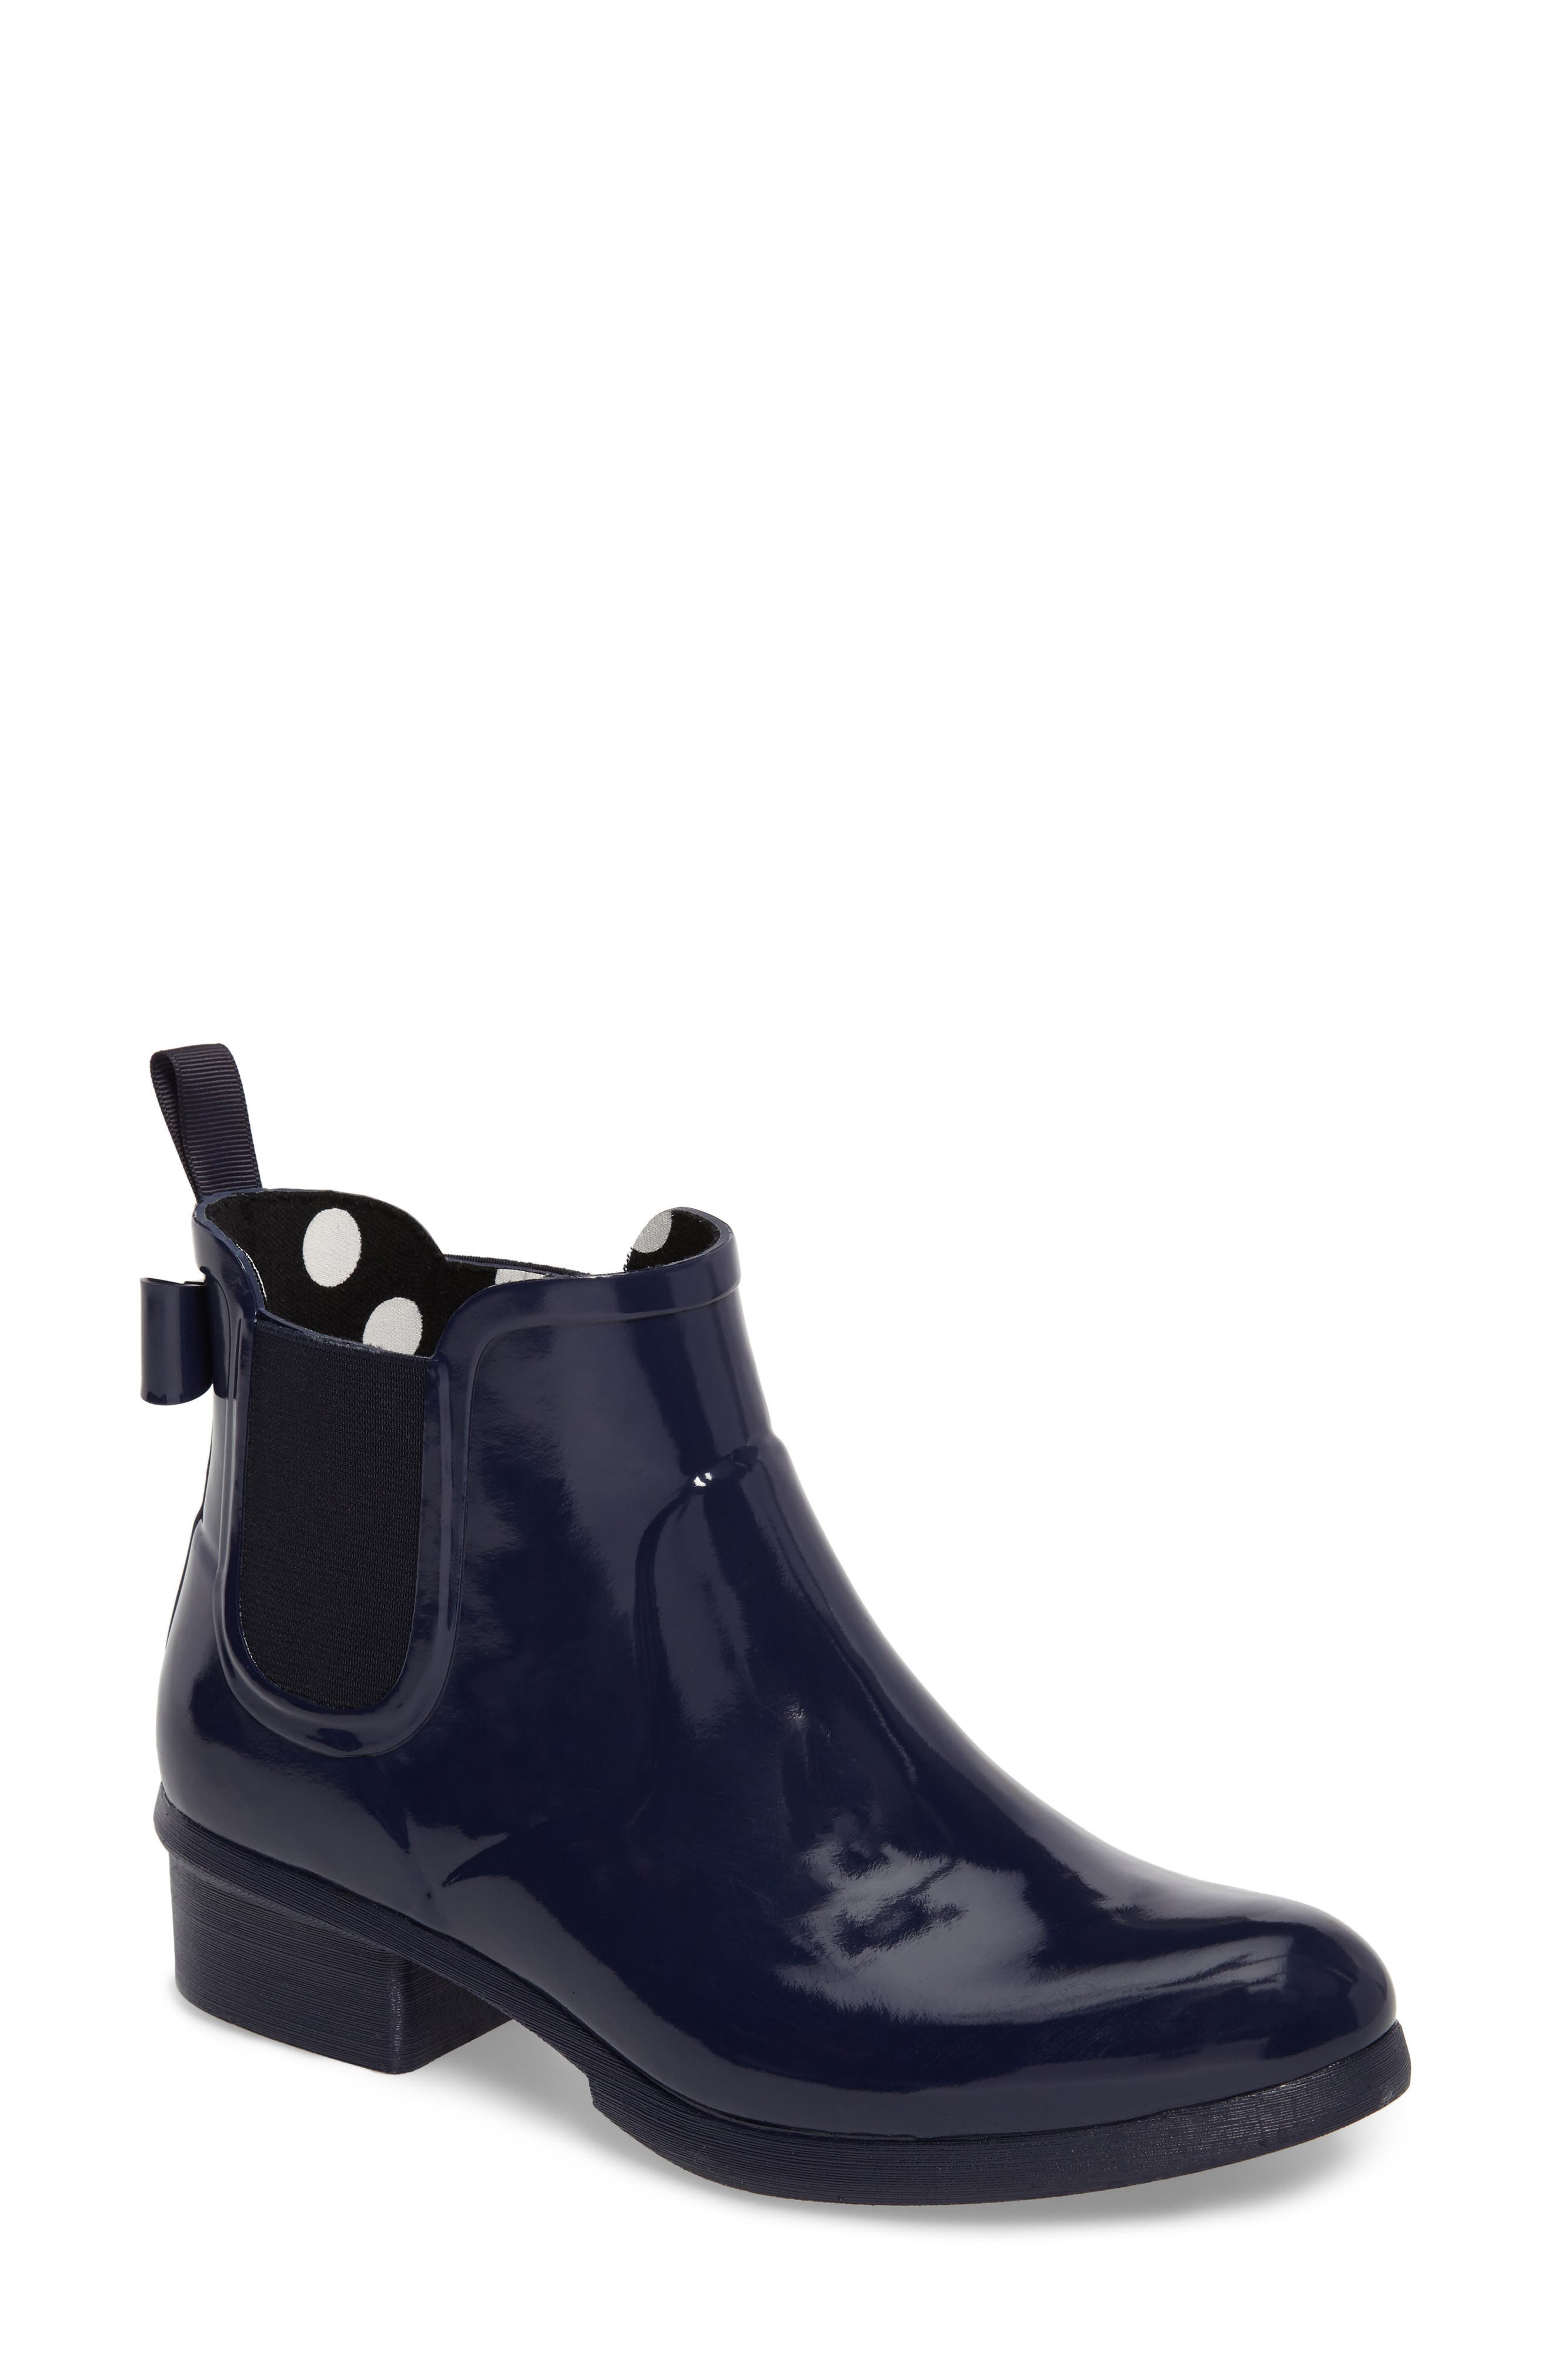 Main Image - kate spade new york telly chelsea rain bootie (Women)